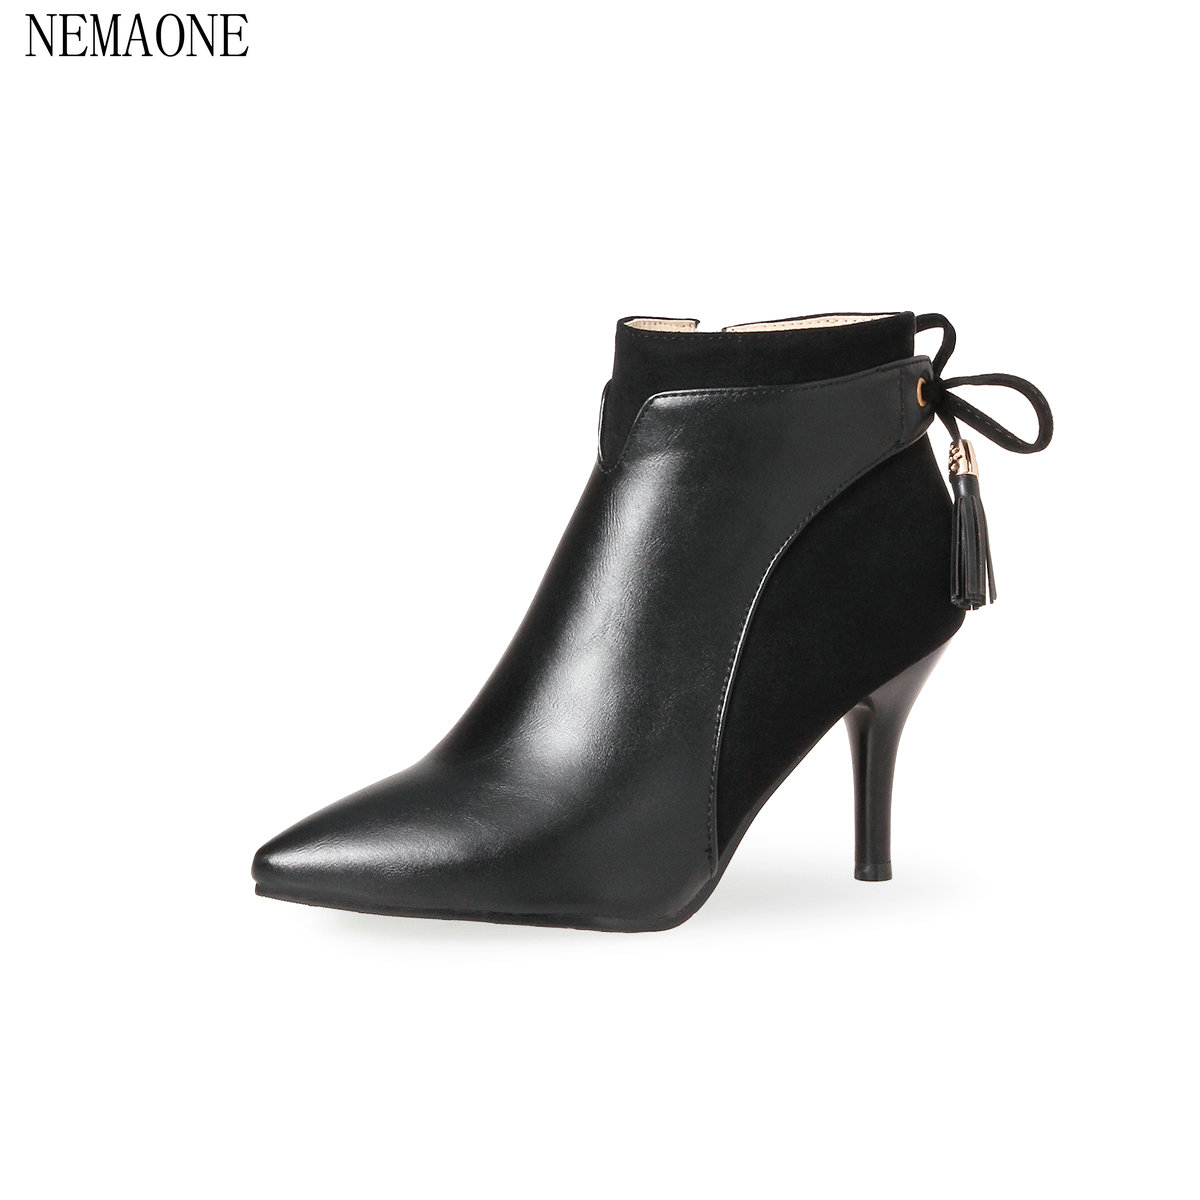 NEMAONE 2018 Women Ankle Boots Black Zipper Deisgn Fashion Westrn Style Pointed Toe Square High Heel Ladies Boots Size 34-43<br>